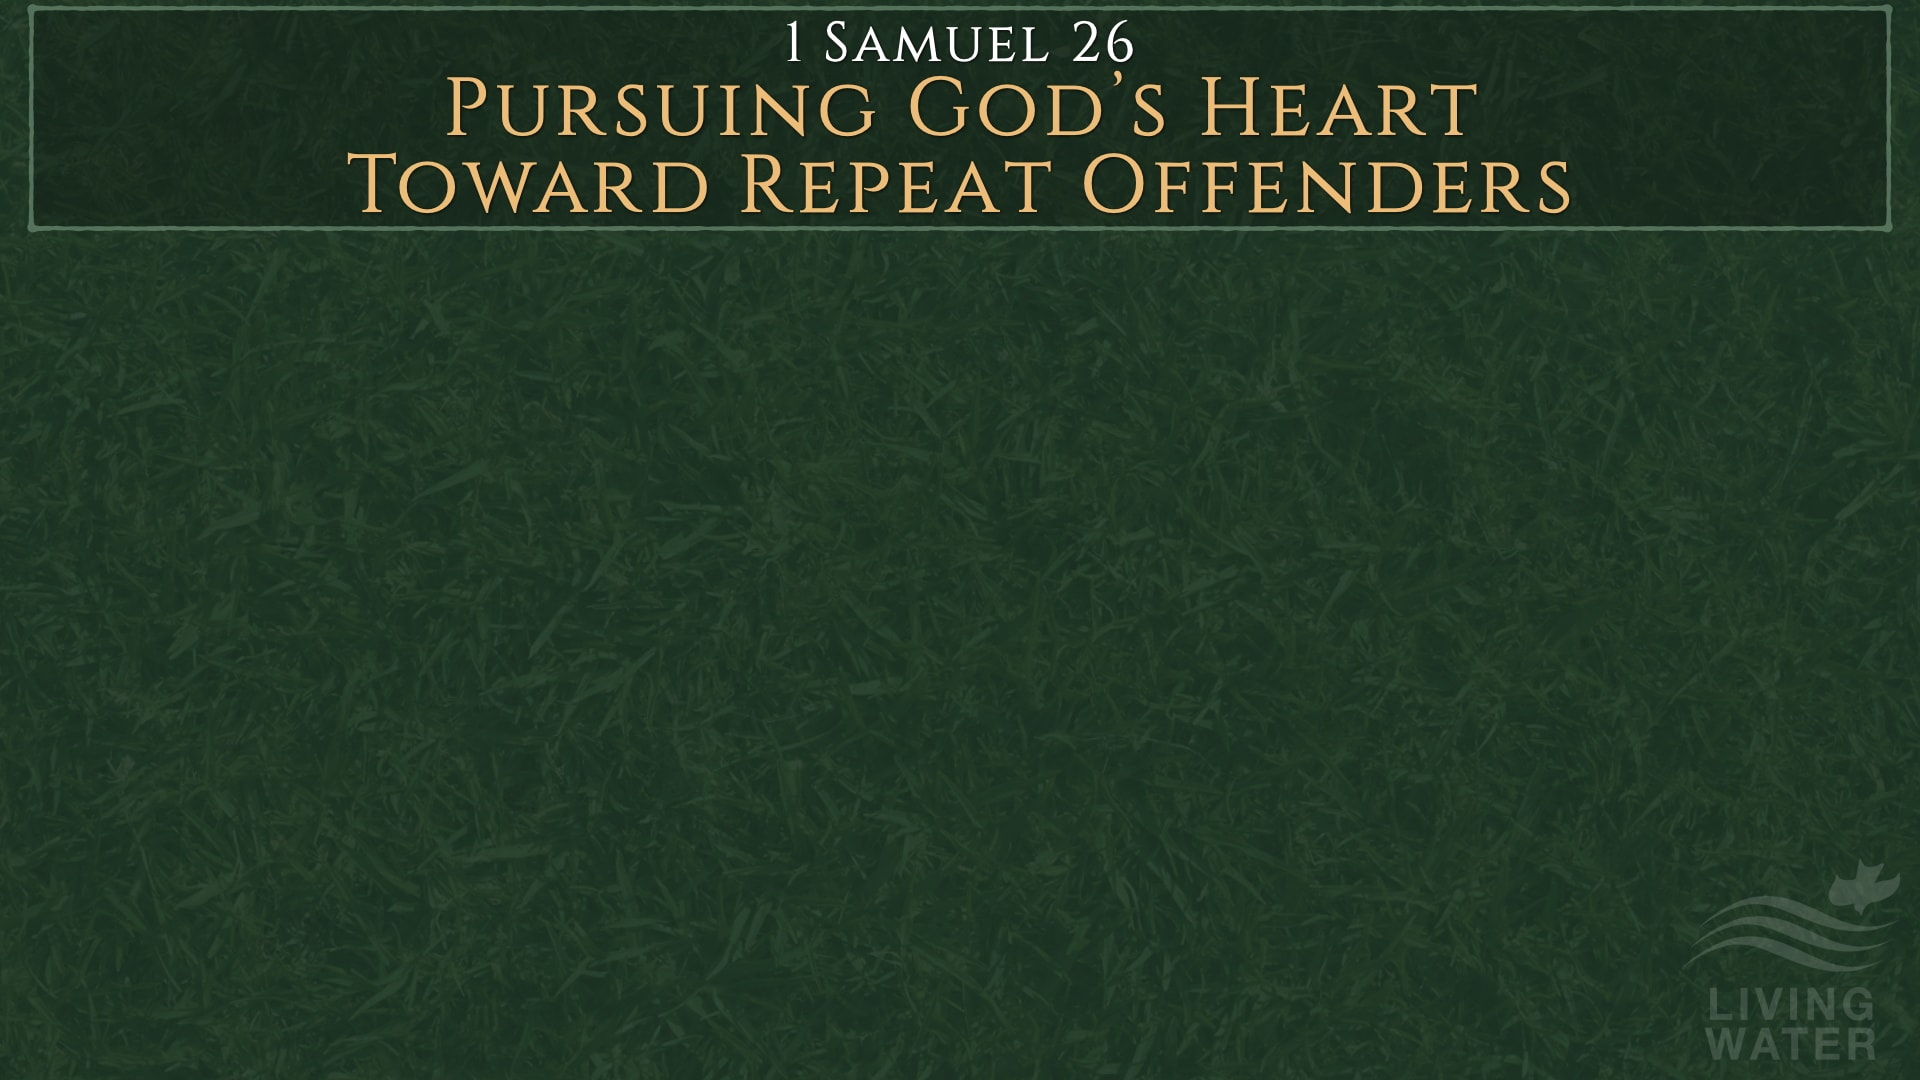 1 Samuel 26, Pursuing God's Heart Towards Repeat Offenders